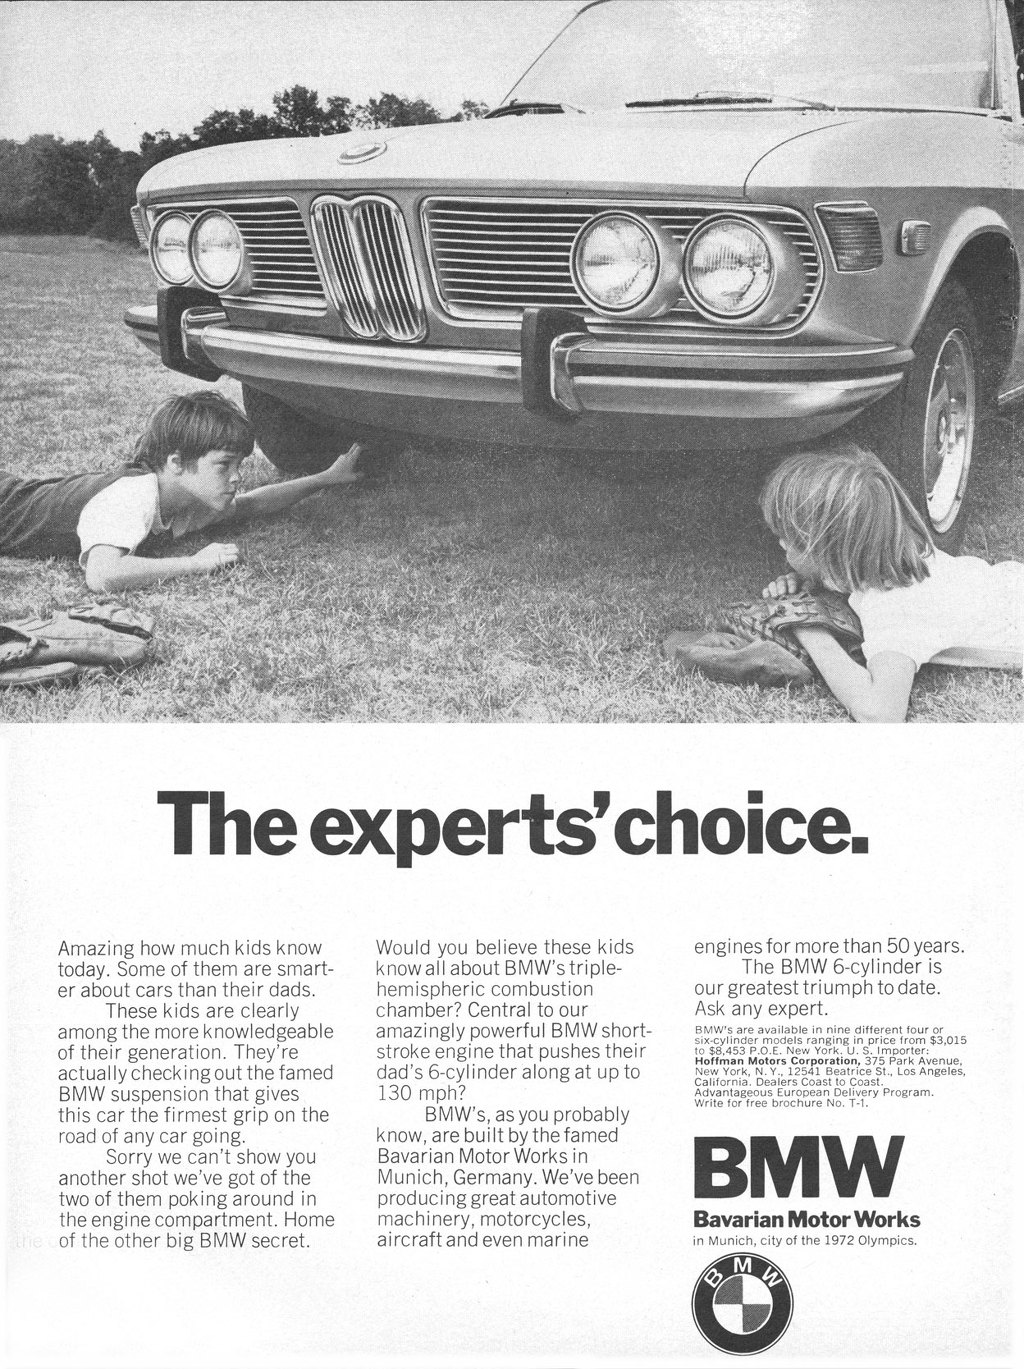 The experts' choice. Amazing how much kids know today. Some of them are smart-er about cars than their dads. These kids are clearly among the more knowledgeable of their generation. They're actually checking out the famed BMW suspension that gives this car the firmest grip on the road of any car going. Sorry we can't show you another shot we've got of the two of them poking around in the engine compartment. Home of the other big BMW secret.  Would you believe these kids know all about BMW's triple-hemispheric combustion chamber? Central to our amazingly powerful BMW short-stroke engine that pushes their dad's 6-cylinder along at up to 130 mph? BMW's, as you probably know, are built by the famed Bavarian Motor Works in Munich, Germany. We've been producing great automotive machinery, motorcycles, aircraft and even marine  engines for more than 50 years. The BMW 6-cylinder is our greatest triumph to date. Ask any expert. BMW's are available in nine different four or six•cylinder models ranging in price from $3,015 to $8,453 P.O.E. New York. U. S. Importer: Hoffman Motors Corporation, 375 Park Avenue, New York, N.Y., 12541 Beatrice St., Los Angeles, California. Dealers Coast to Coast. Advantageous European Delivery Program. Write for free brochure No. Ti.•  BMW  Bavarian Motor Works in Munich, city of the 1972 Olympics.